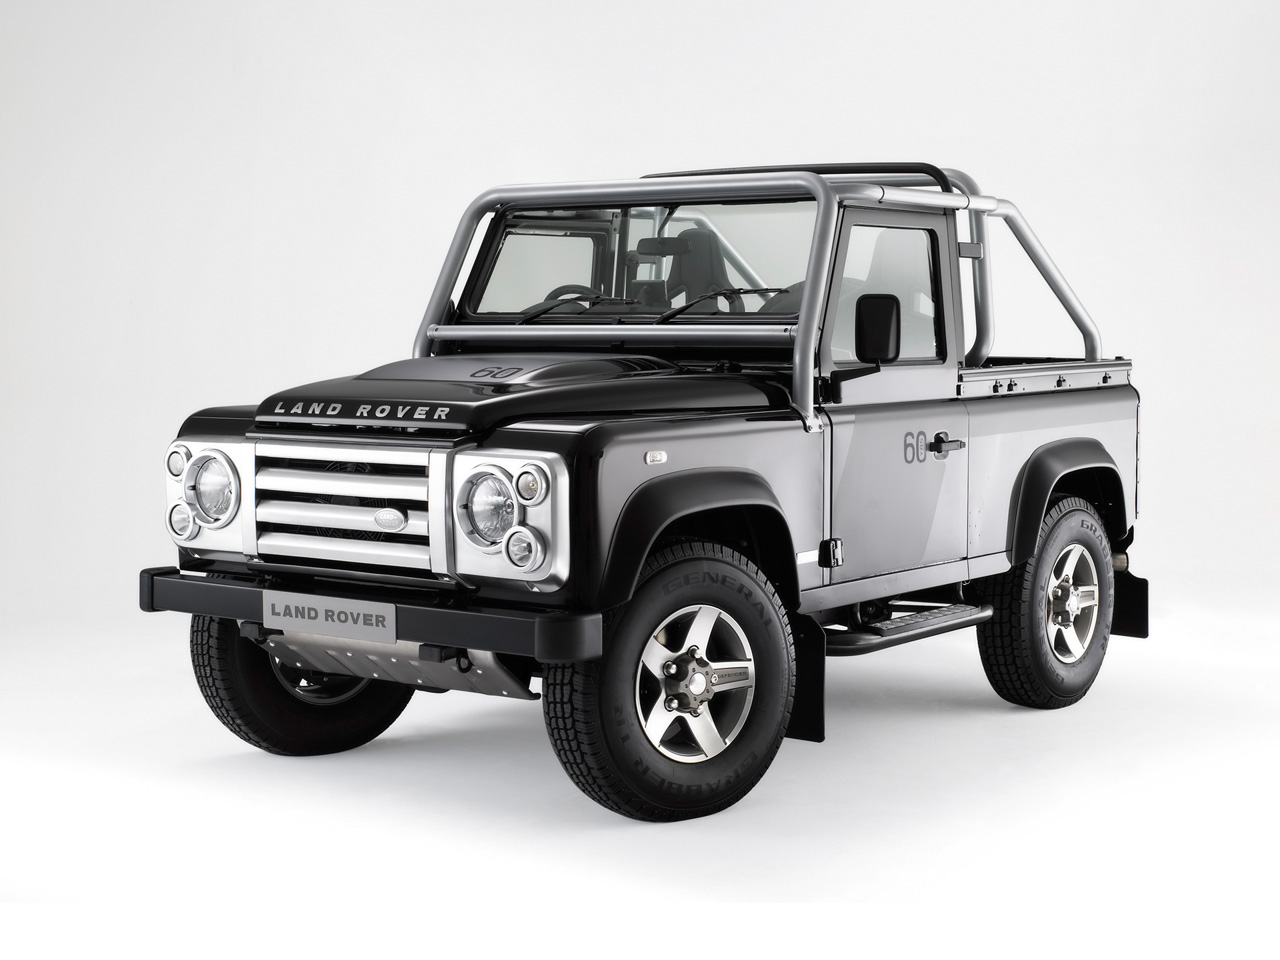 Land Rover Defender Car Specifications High Resolution Wallpaper Free